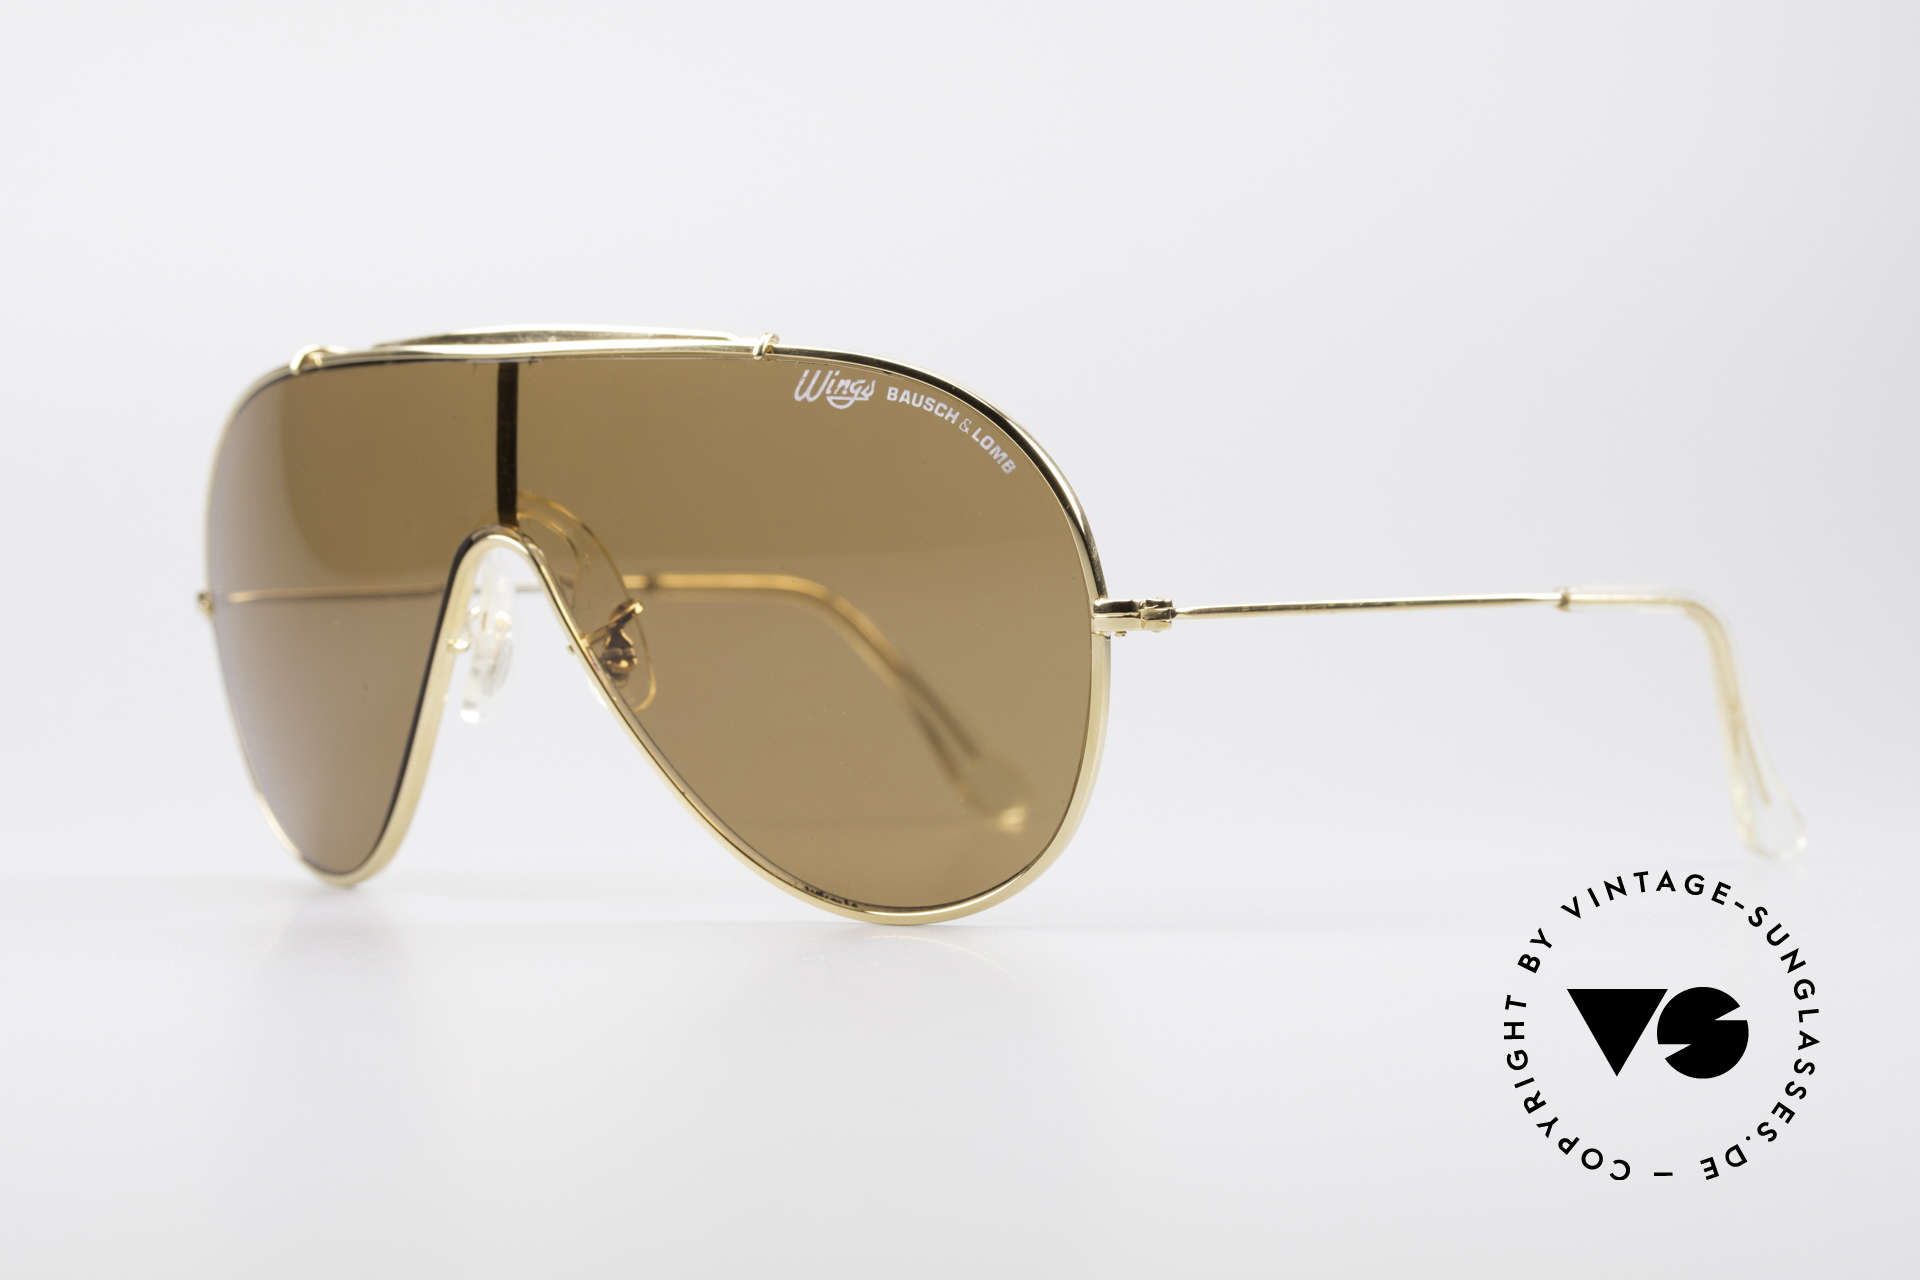 Bausch & Lomb Wings Amber Rose Vintage Shades, worn by Amber Rose in 2010 (Fashion Week, NY), Made for Men and Women